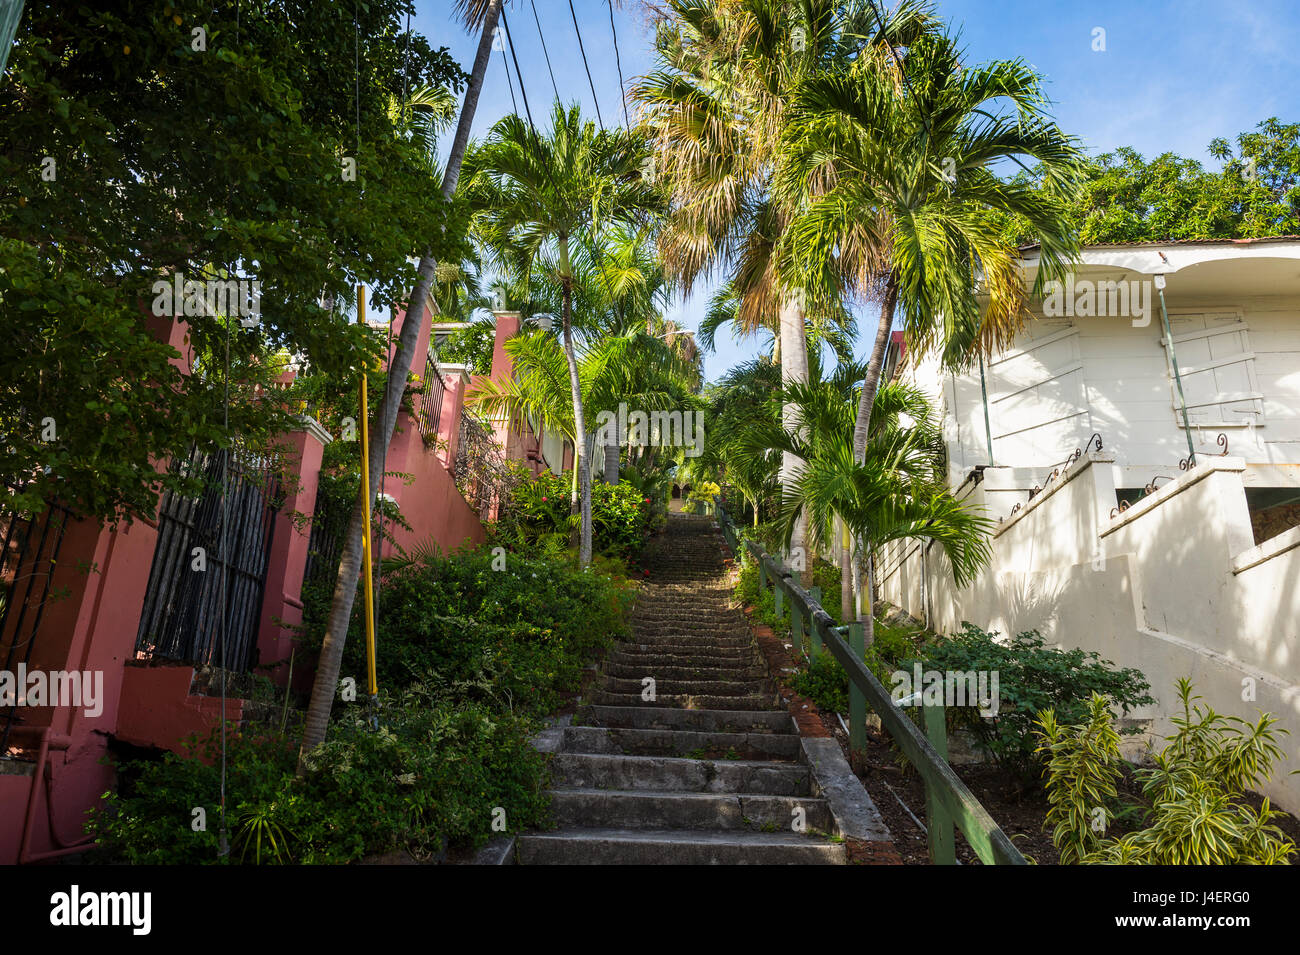 99 steps, little alley in Charlotte Amalie, capital of St. Thomas, US Virgin Islands, West Indies, Caribbean, Central Stock Photo